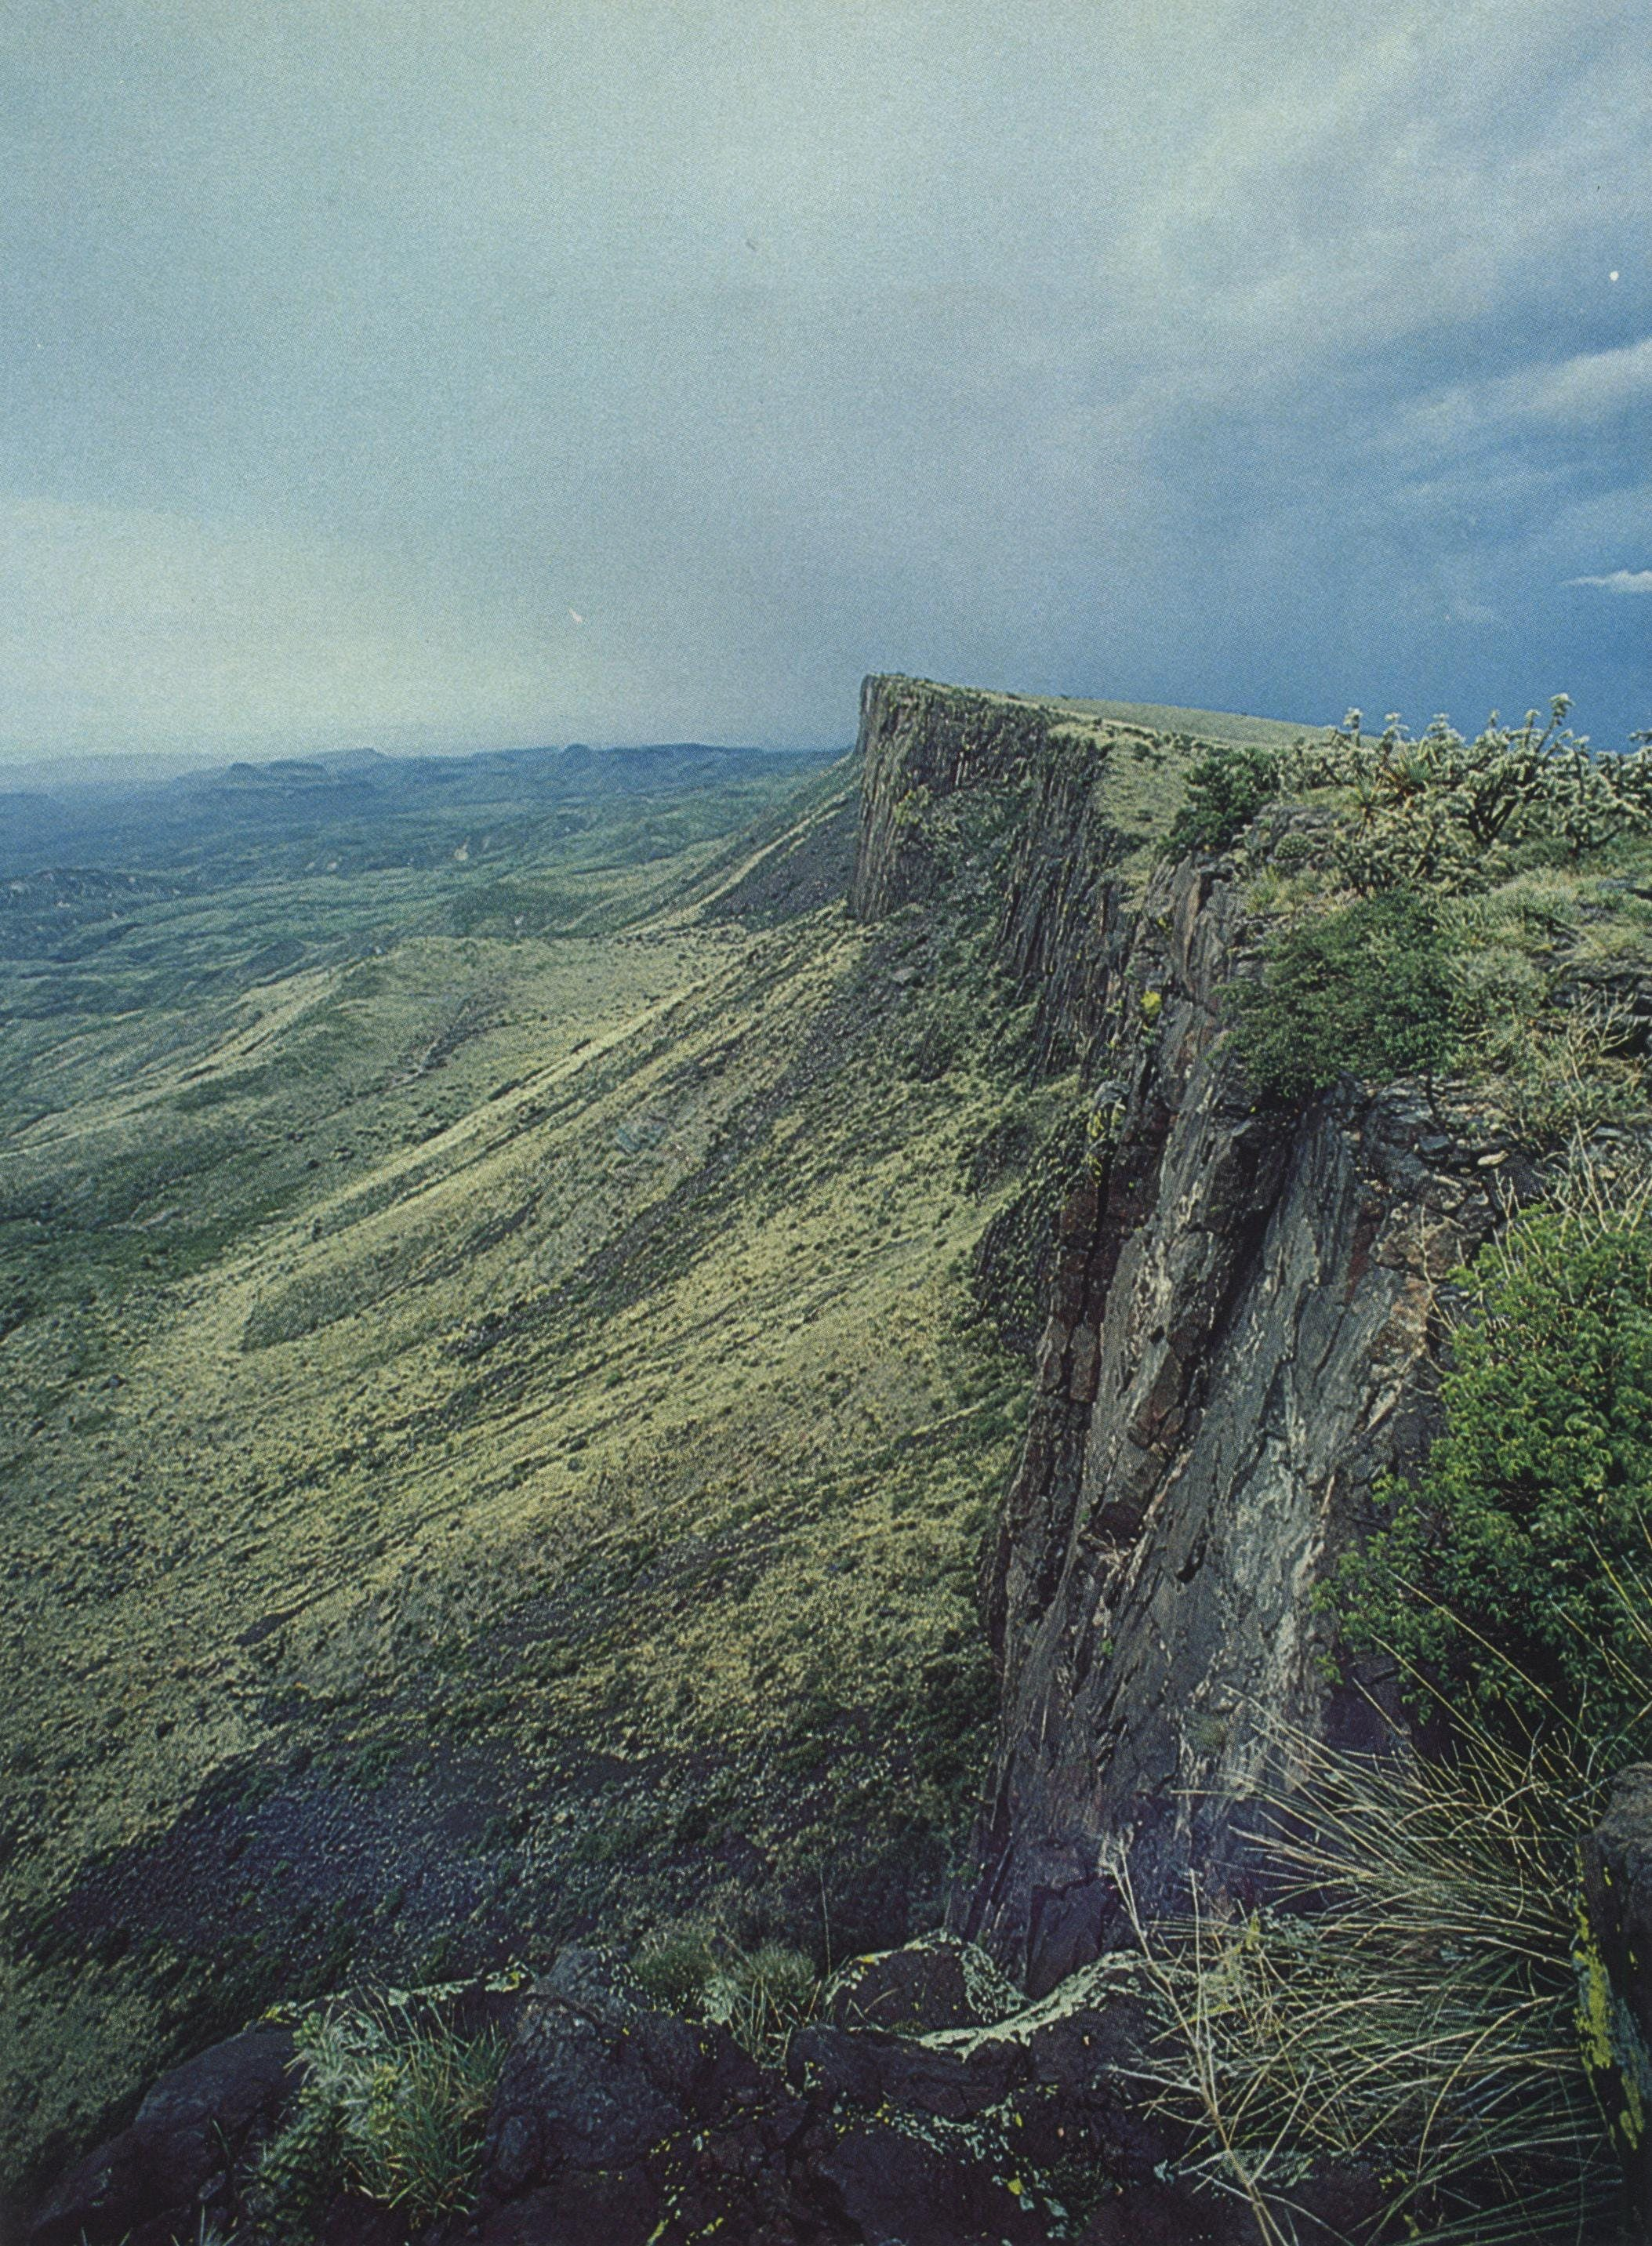 To the south of the Rimrock stretches the merciless Chihuahuan Desert and a 400-year-old Hispanic way of life.